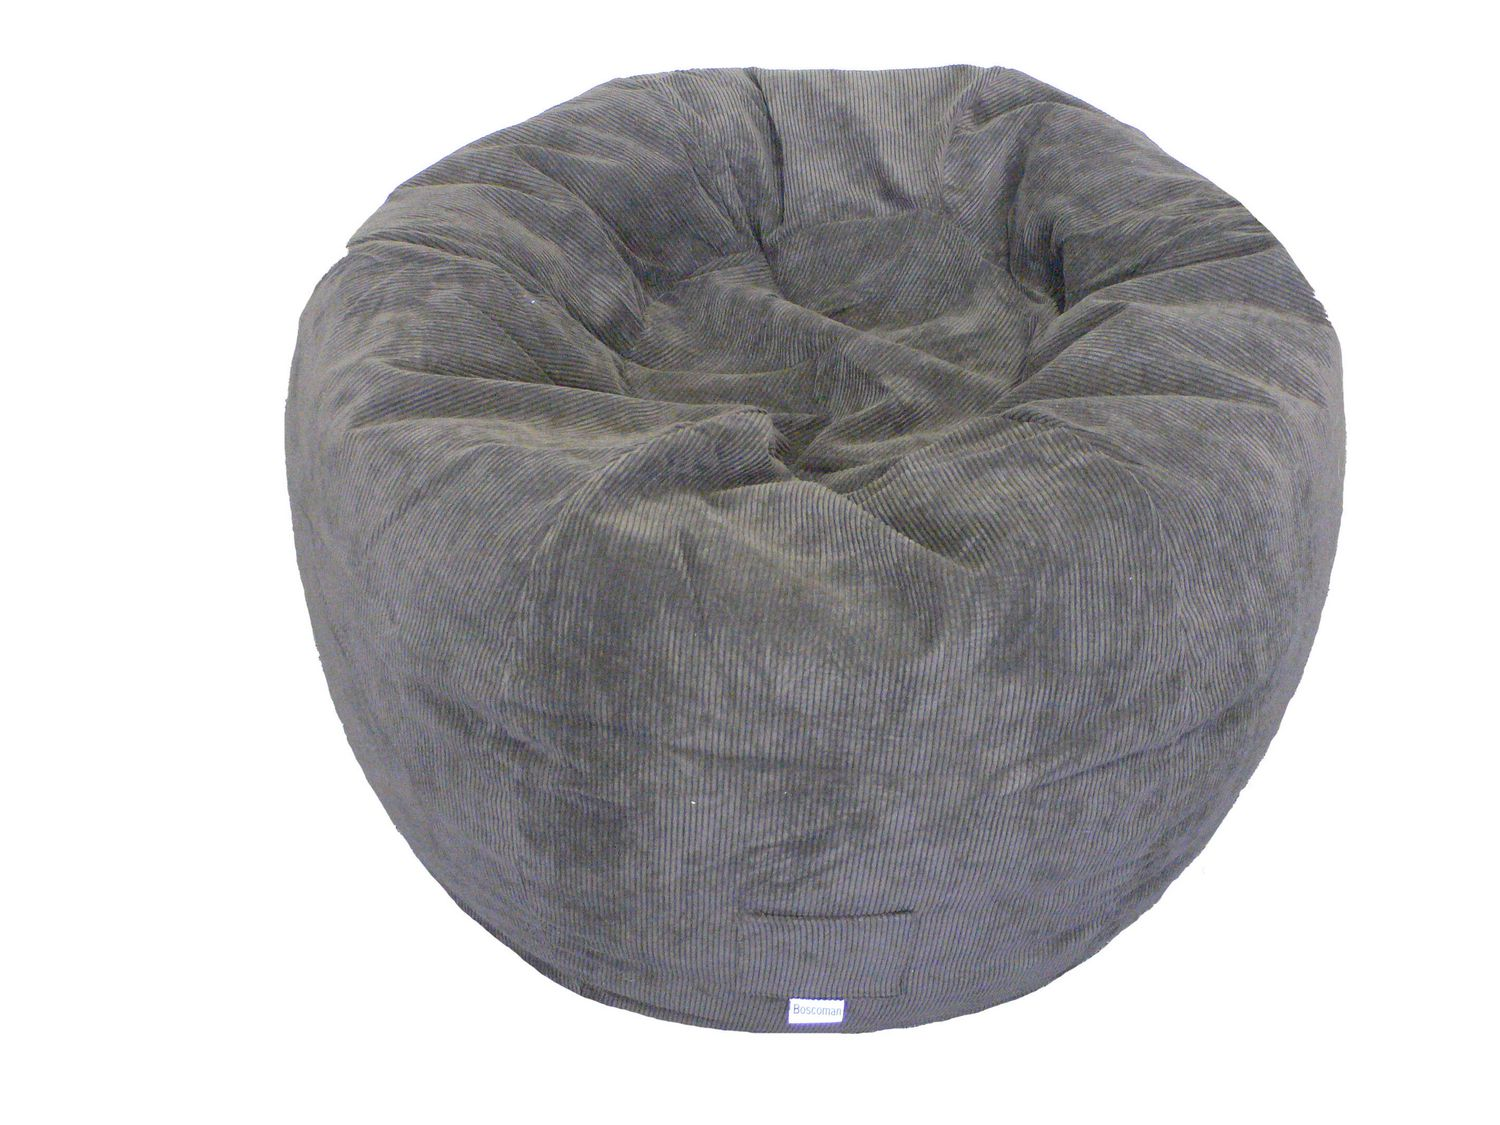 pin pinterest ich wyposa junior chair beanbag chairs enie wn bag bean i trza